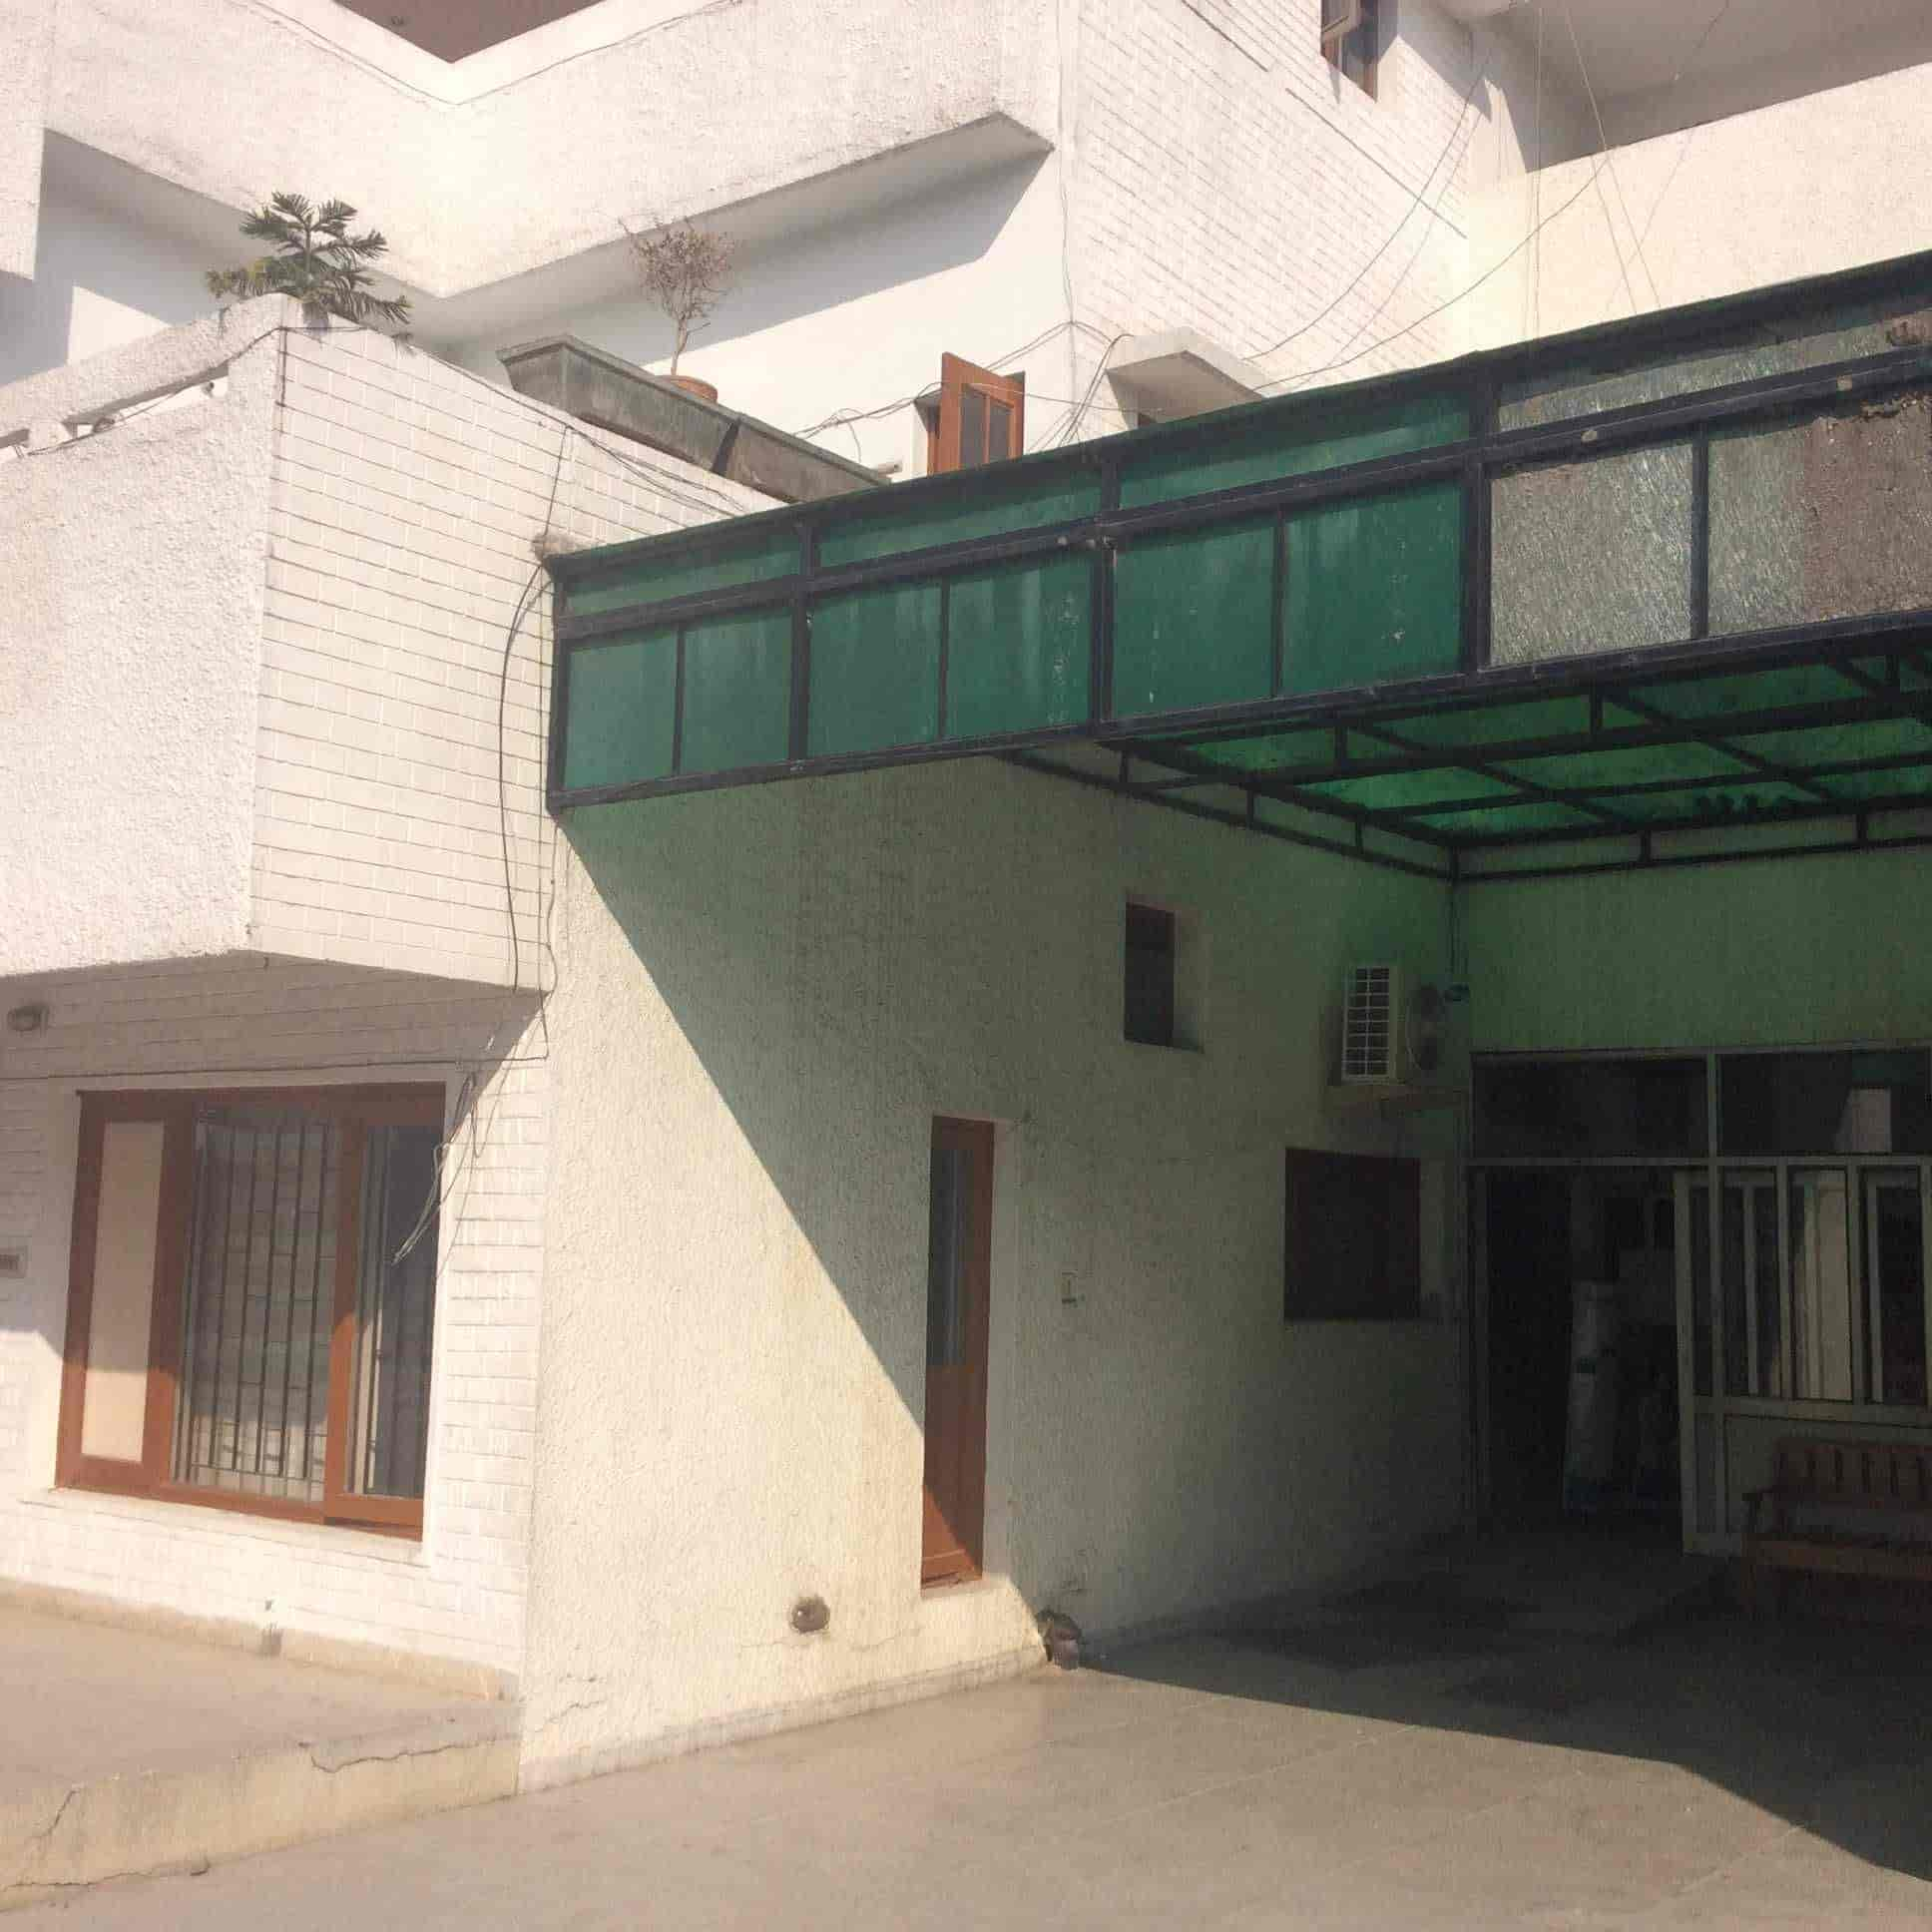 Liberty Hospital Photos, Sas Nagar, Mohali- Pictures